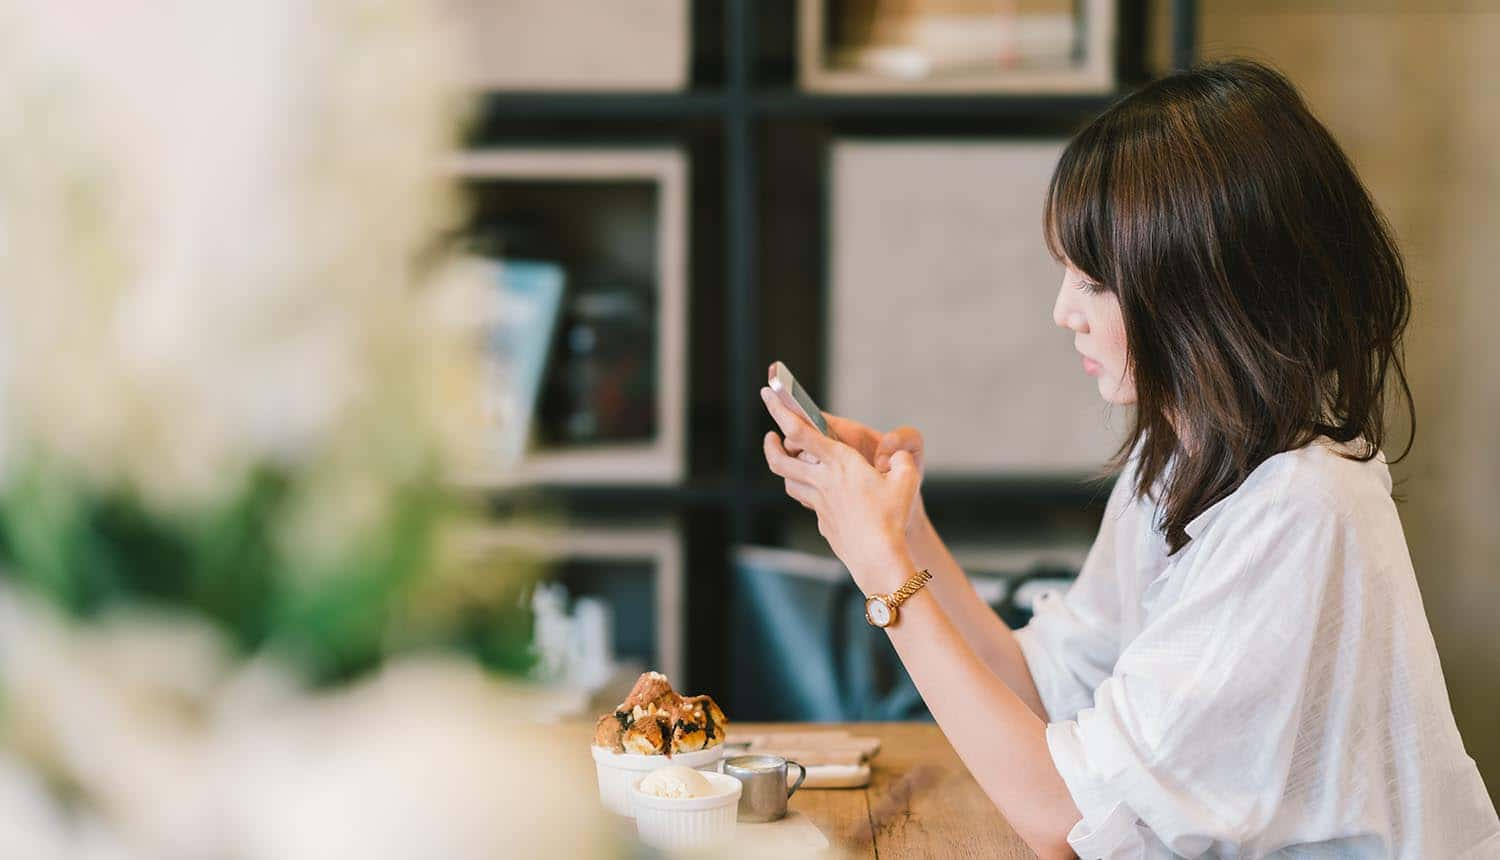 Asian girl using smartphone at cafe showing priority of convenience over personal data security